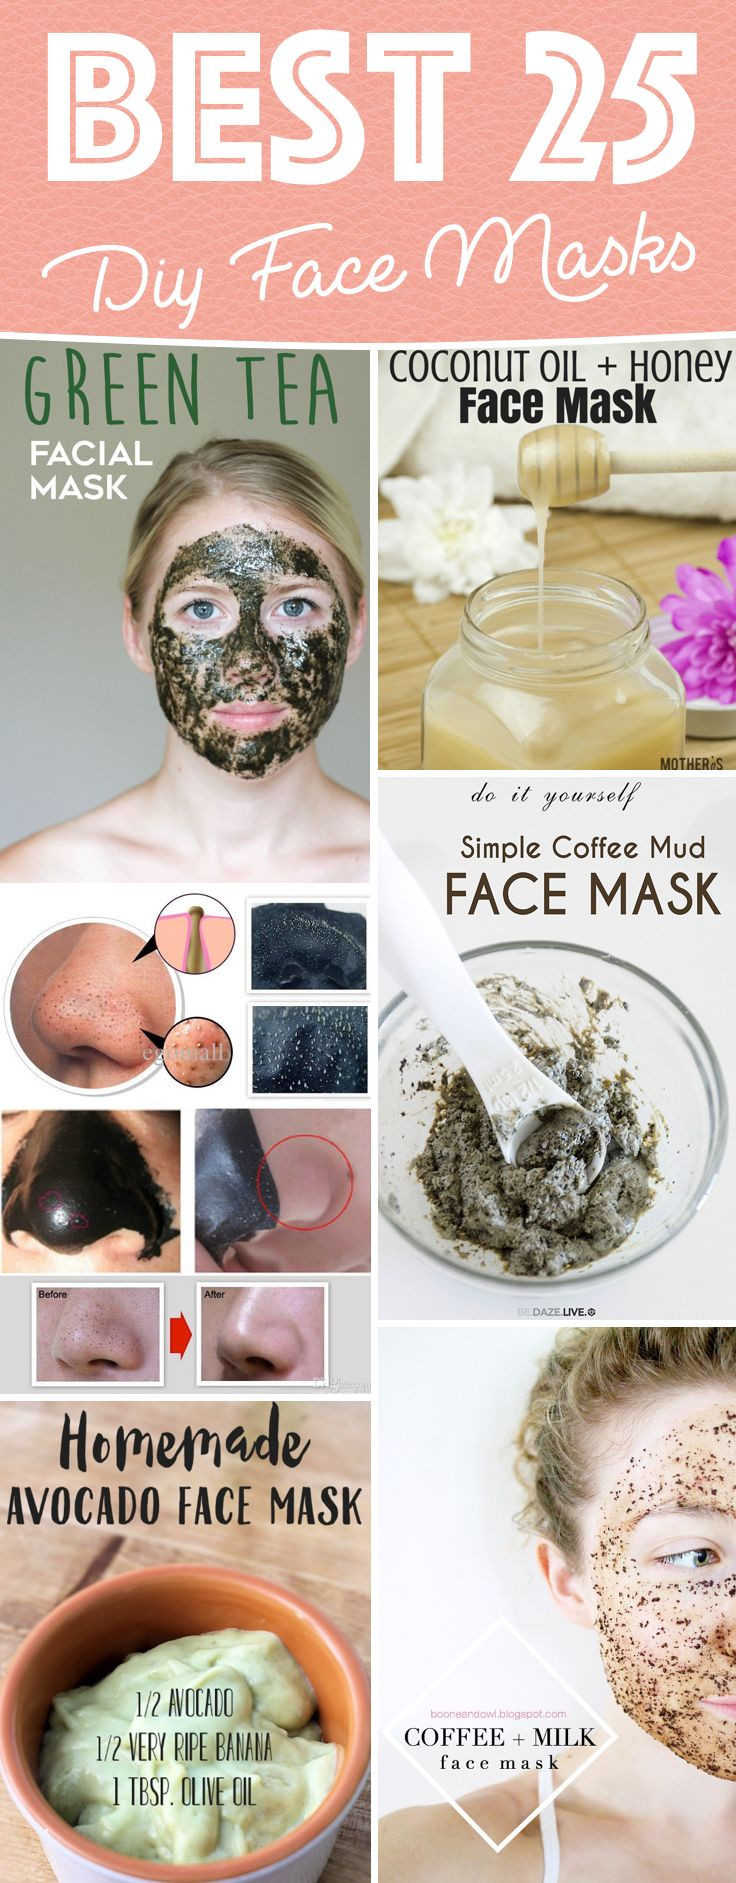 Easy DIY Face Mask  25 best ideas about Homemade Face Masks on Pinterest